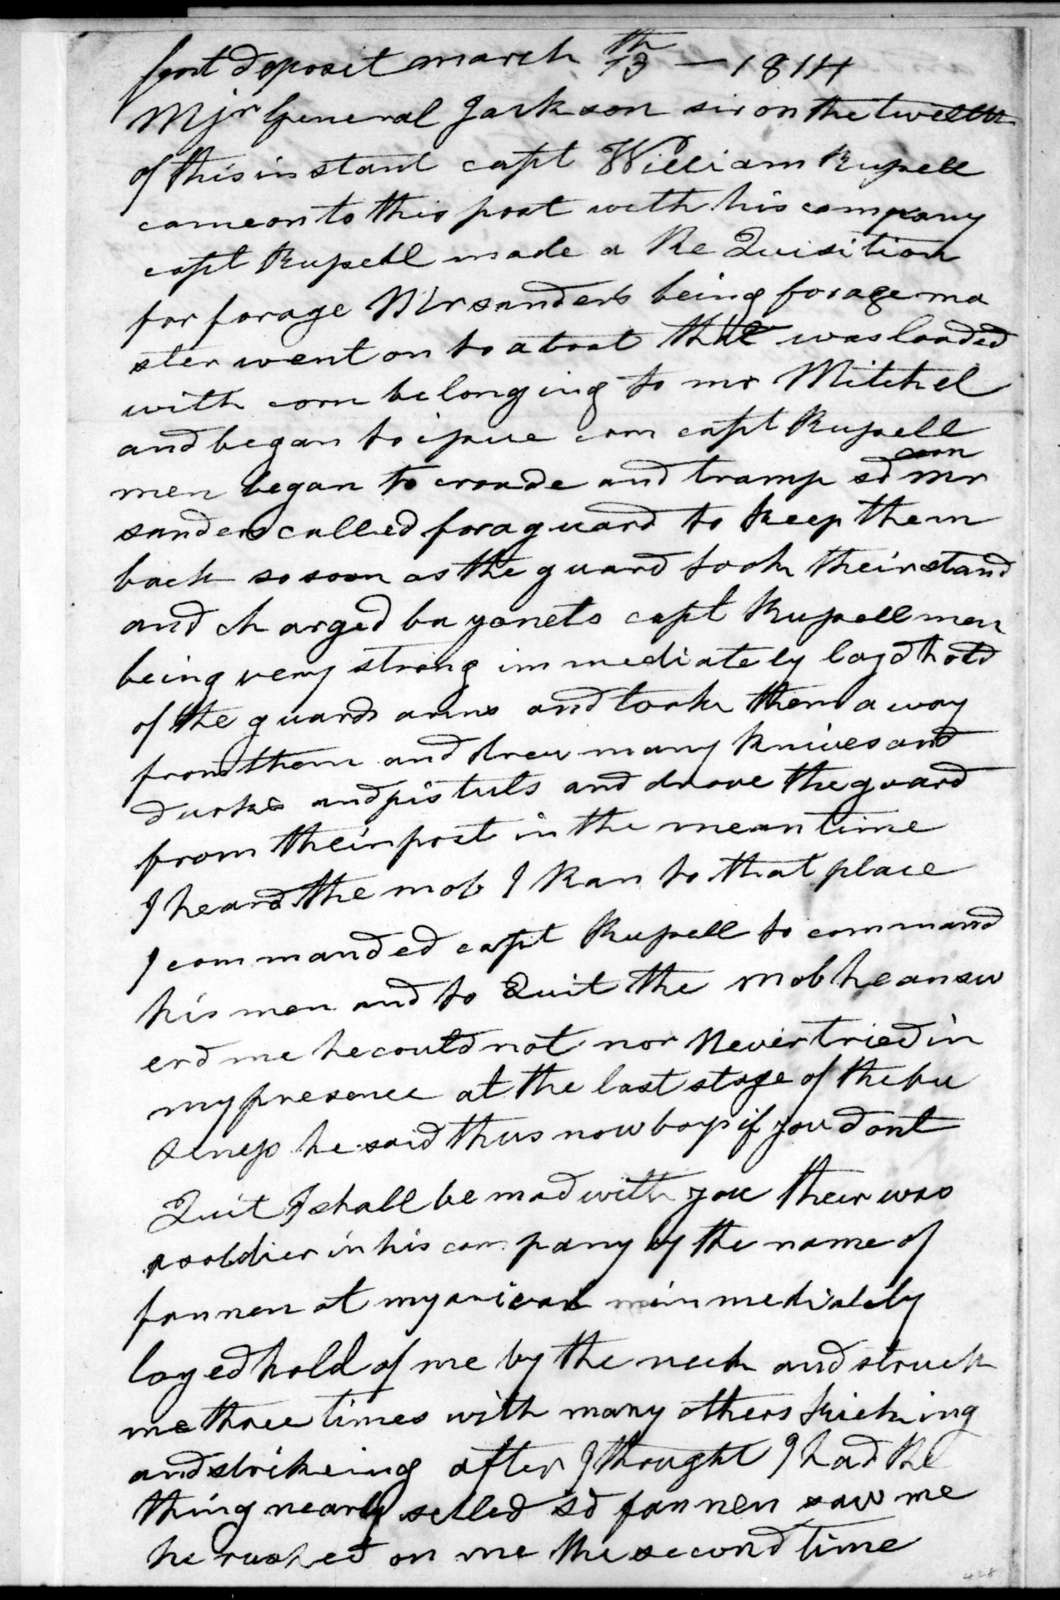 John Bradley to William Russell, March 13, 1814